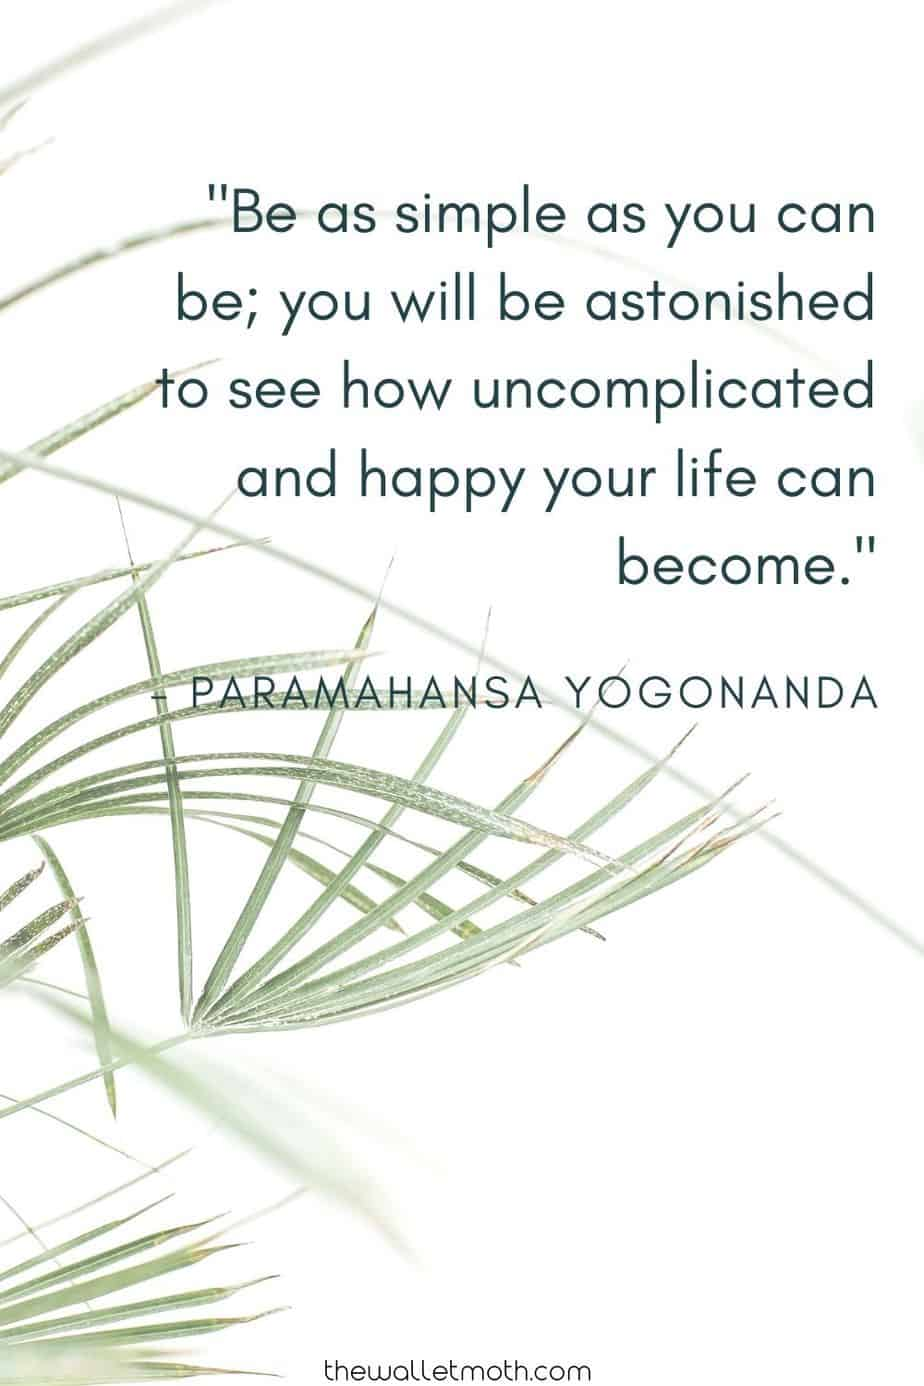 "Be as simple as you can be; you will be astonished to see how uncomplicated and happy your life can become."" - Paramahnsa Yogonanda. Simple Living Quotes"